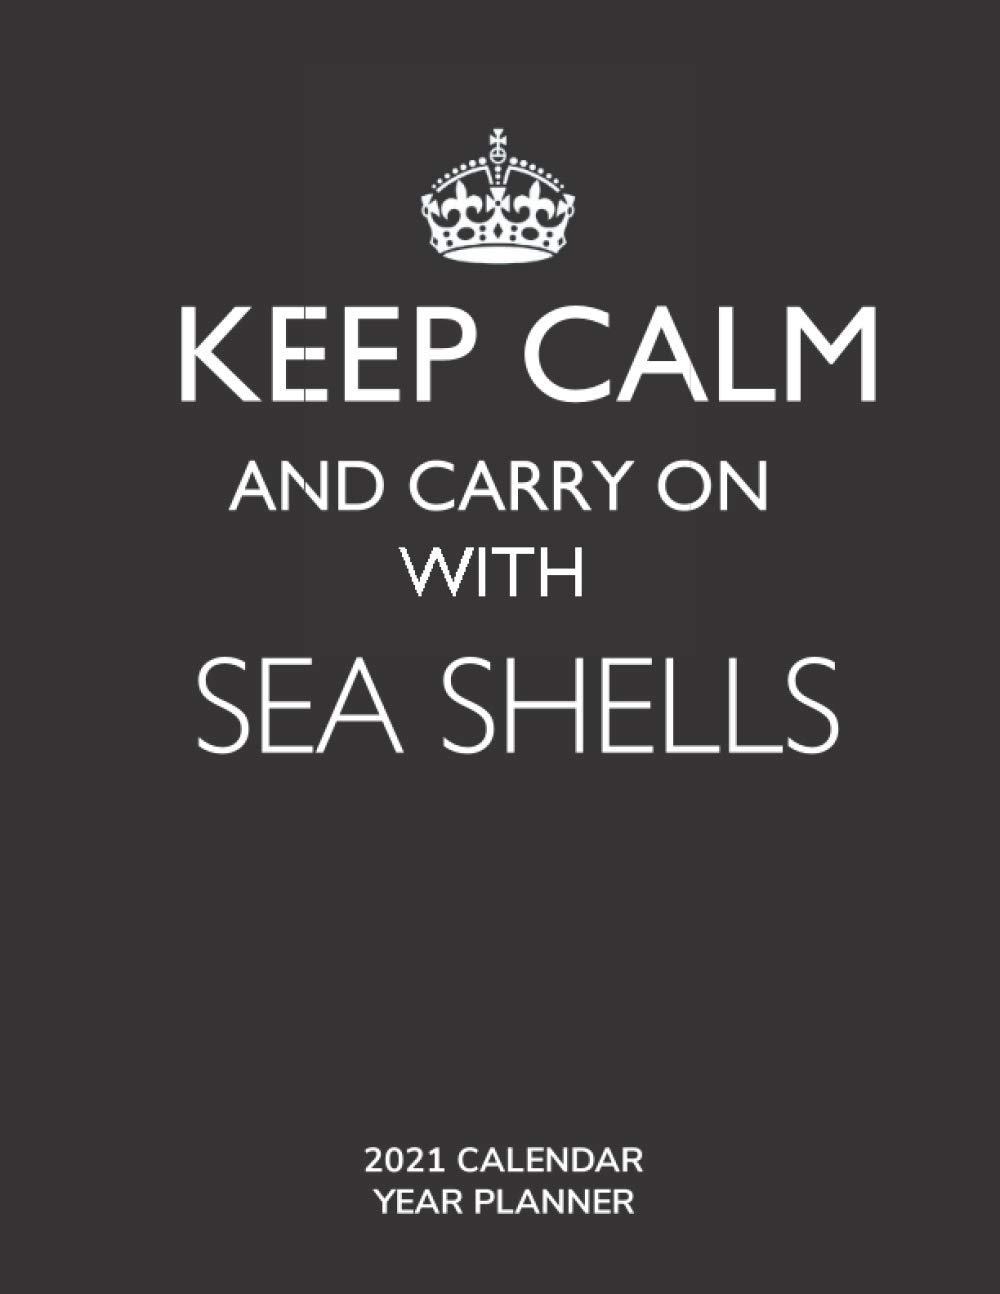 Keep Calm and Carry On with Sea Shells - 2021 Calendar Year Planner: Hobby Enthusiast and Fan - Monthly & Weekly Calendar - Yearly Planner - Annual Daily Diary Book